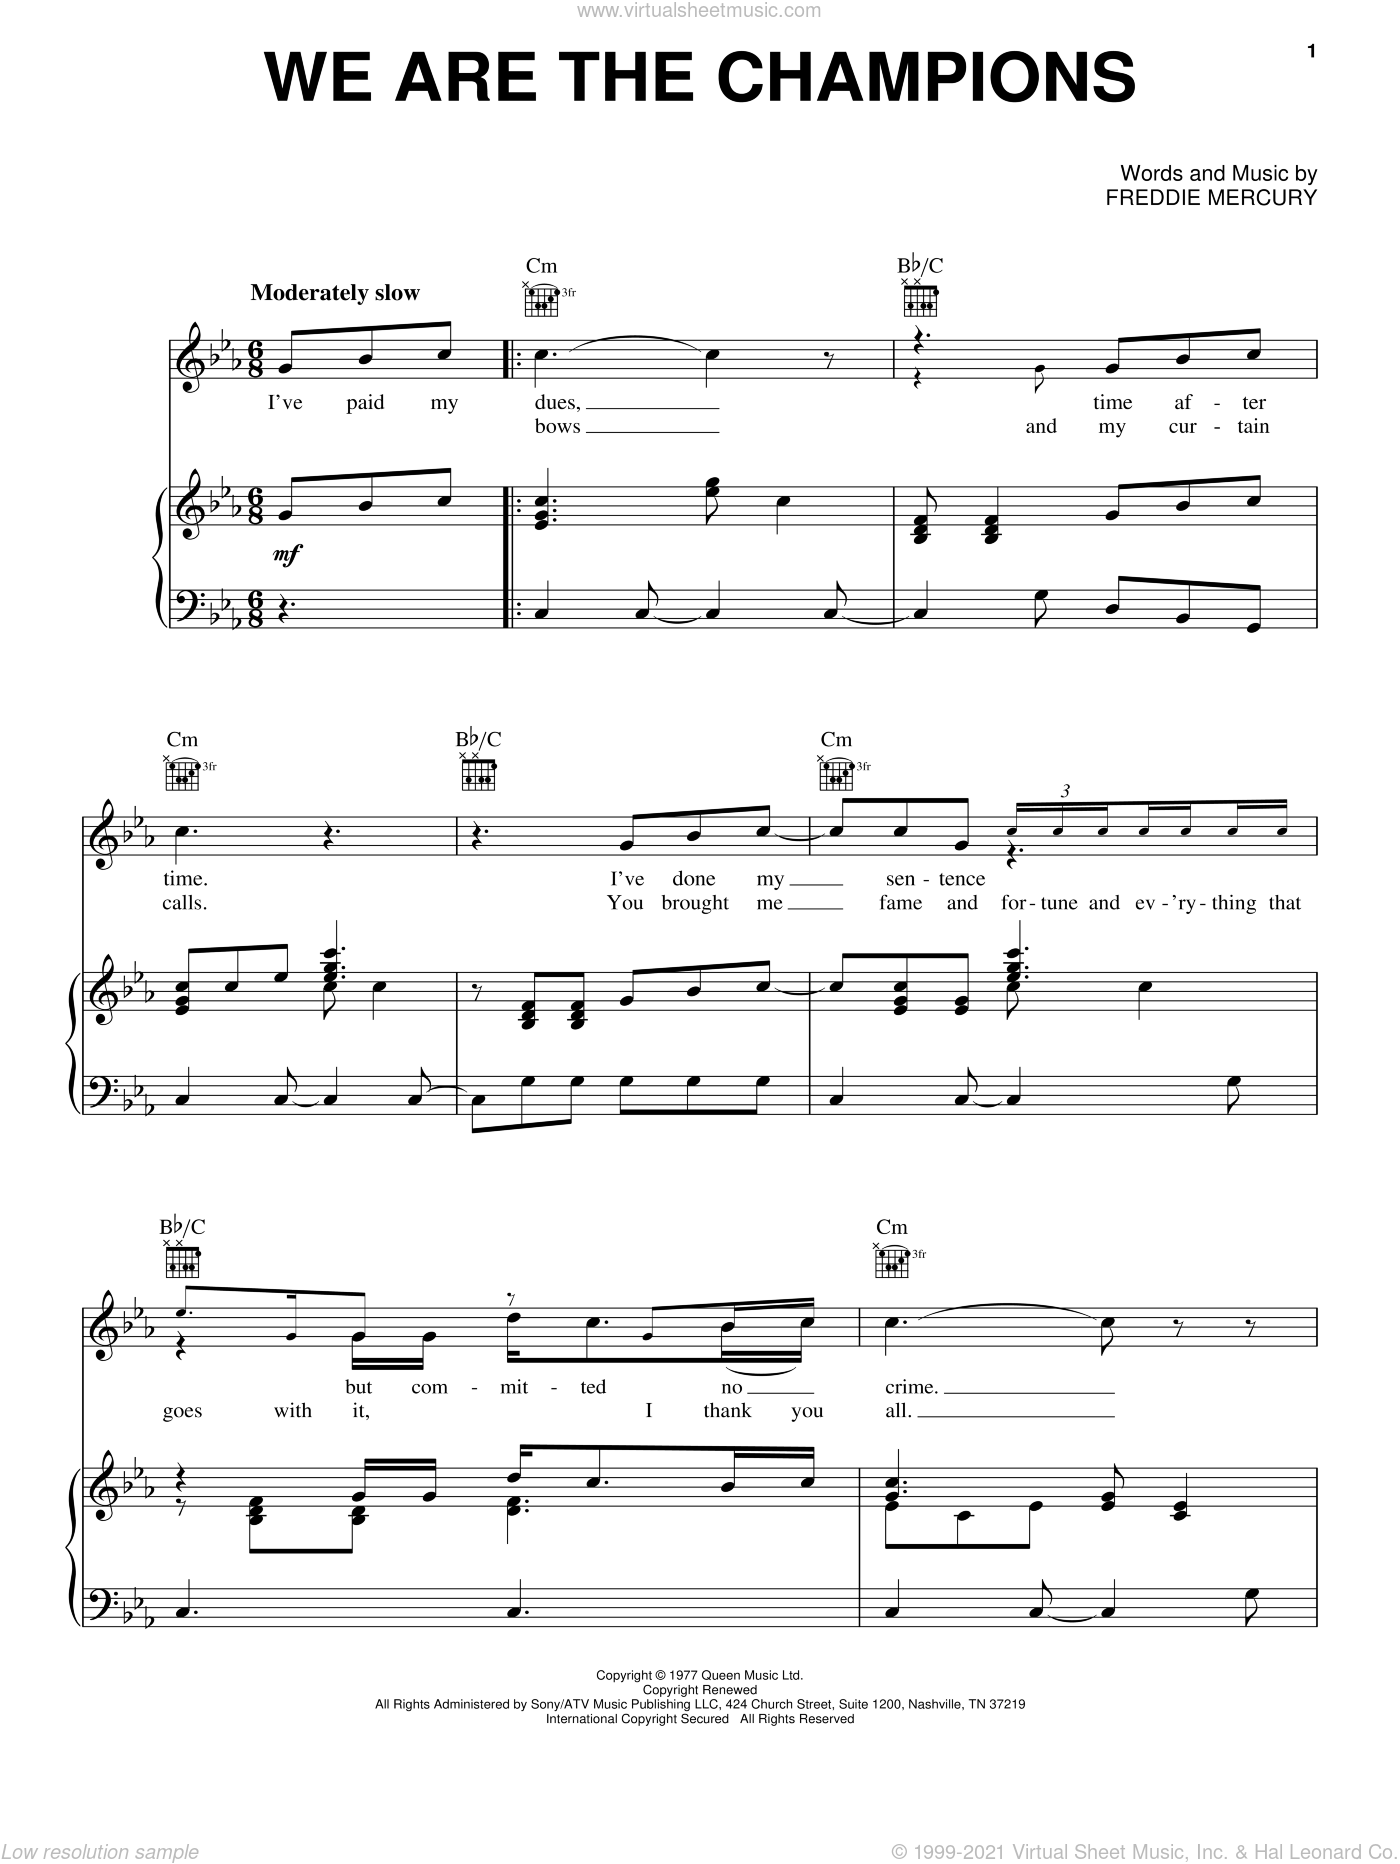 We Are The Champions sheet music for voice, piano or guitar by Queen, Chicken Little (Movie) and Freddie Mercury, intermediate skill level